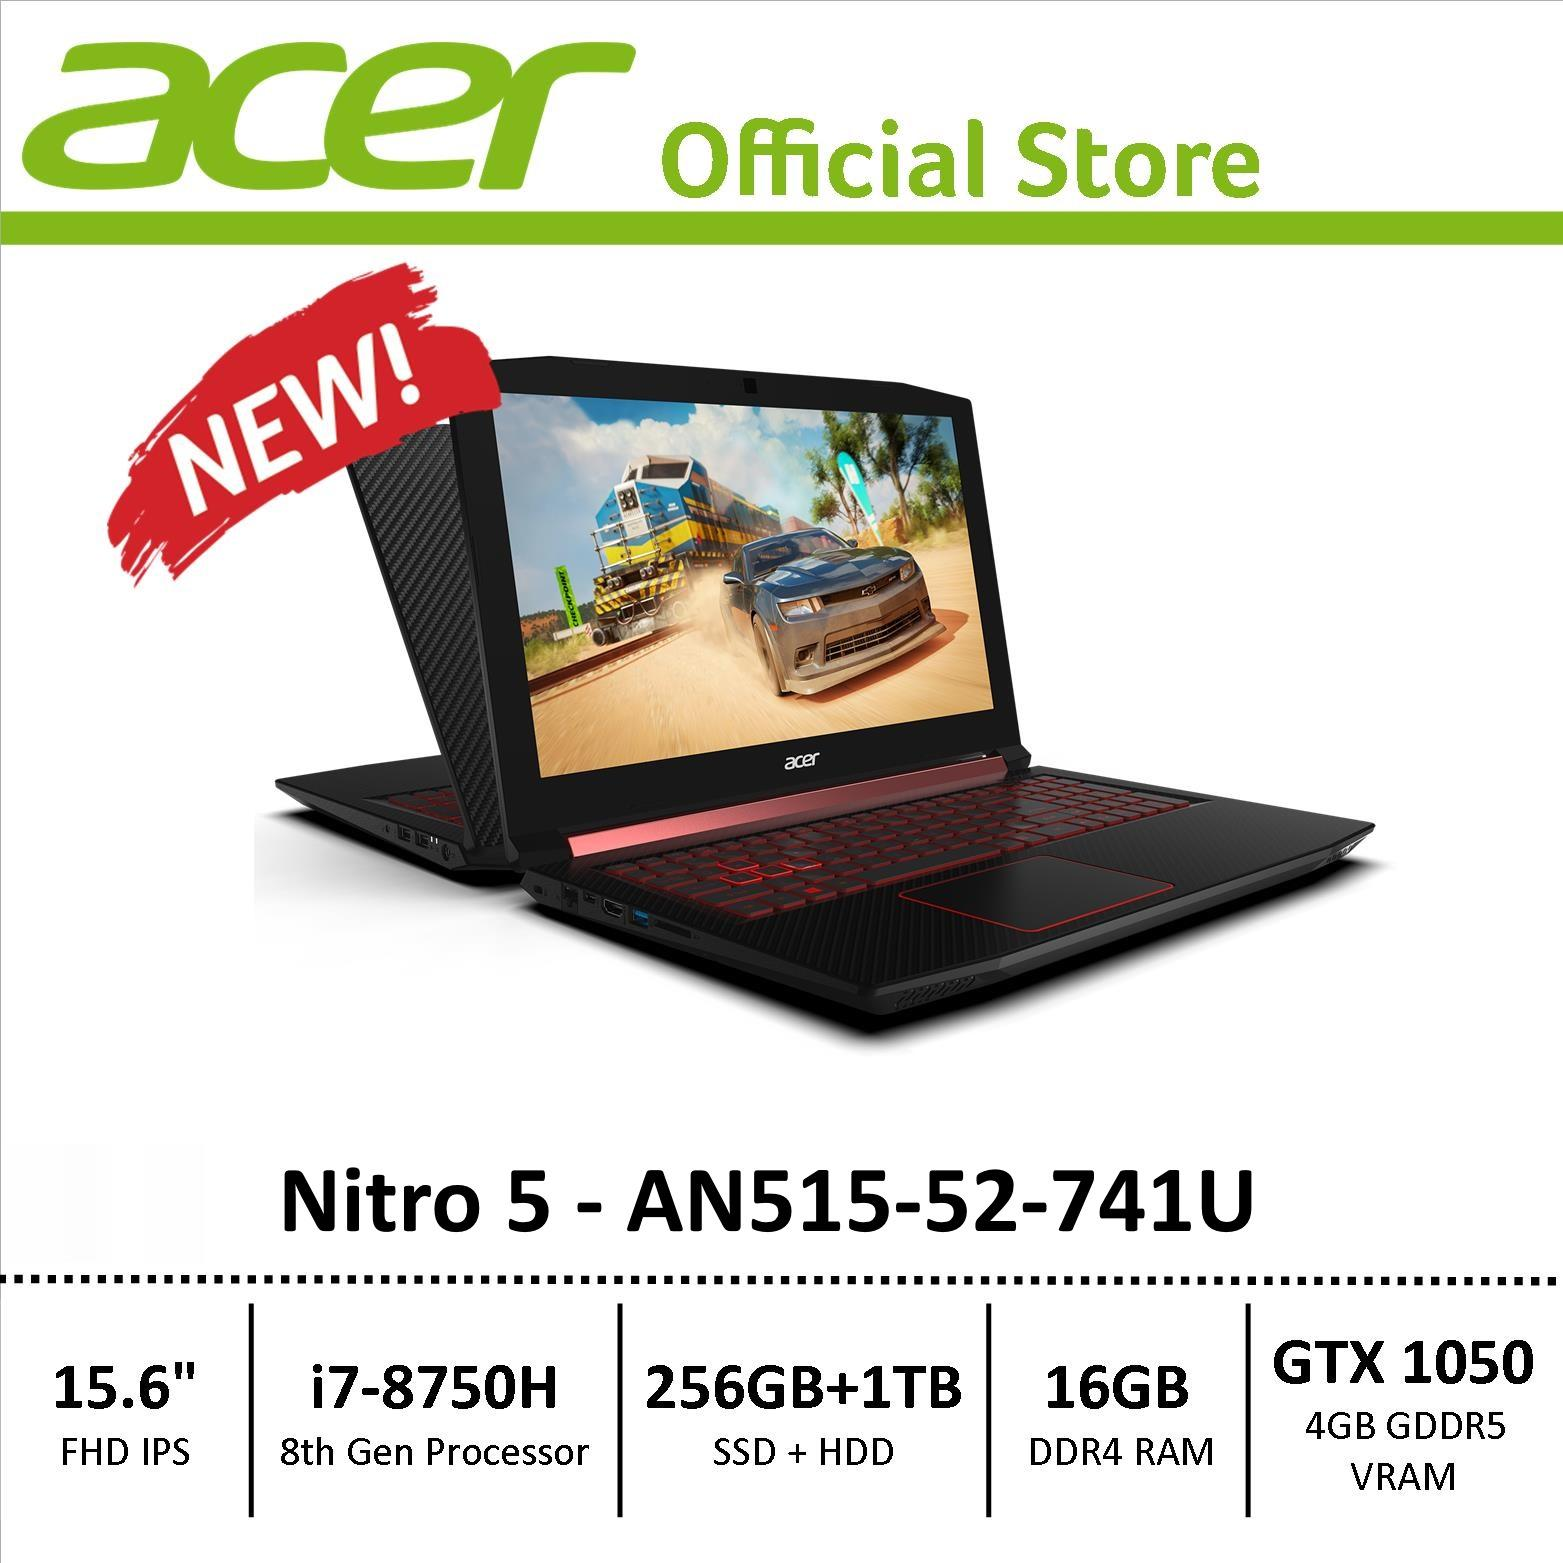 Acer Nitro 5 (AN515-52-741U) Gaming Laptop – 8th Generation i7 Processor with GTX 1050 Graphics – Free Gift with purchase